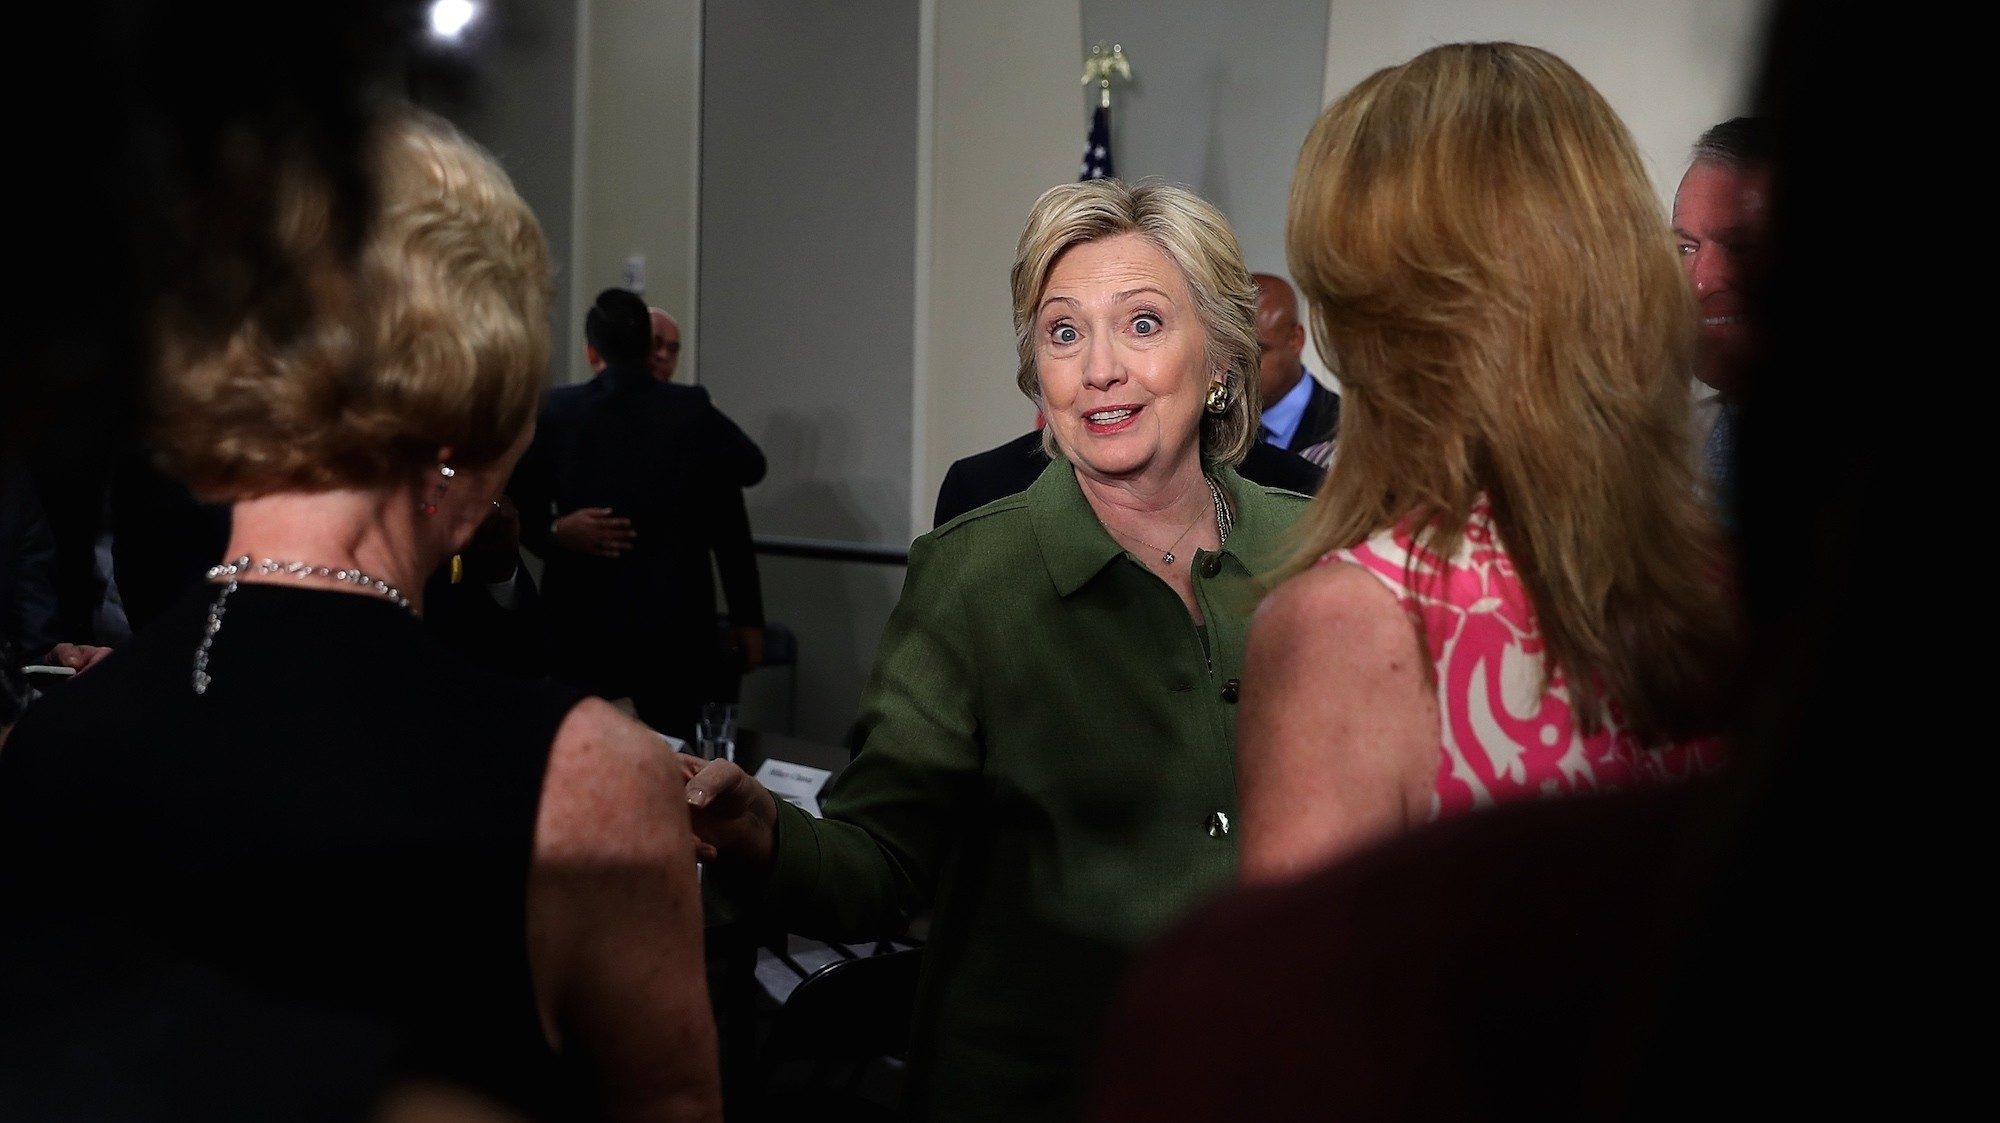 Exclusive: Hillary Clinton exchanged top secret emails on her private server with three aides